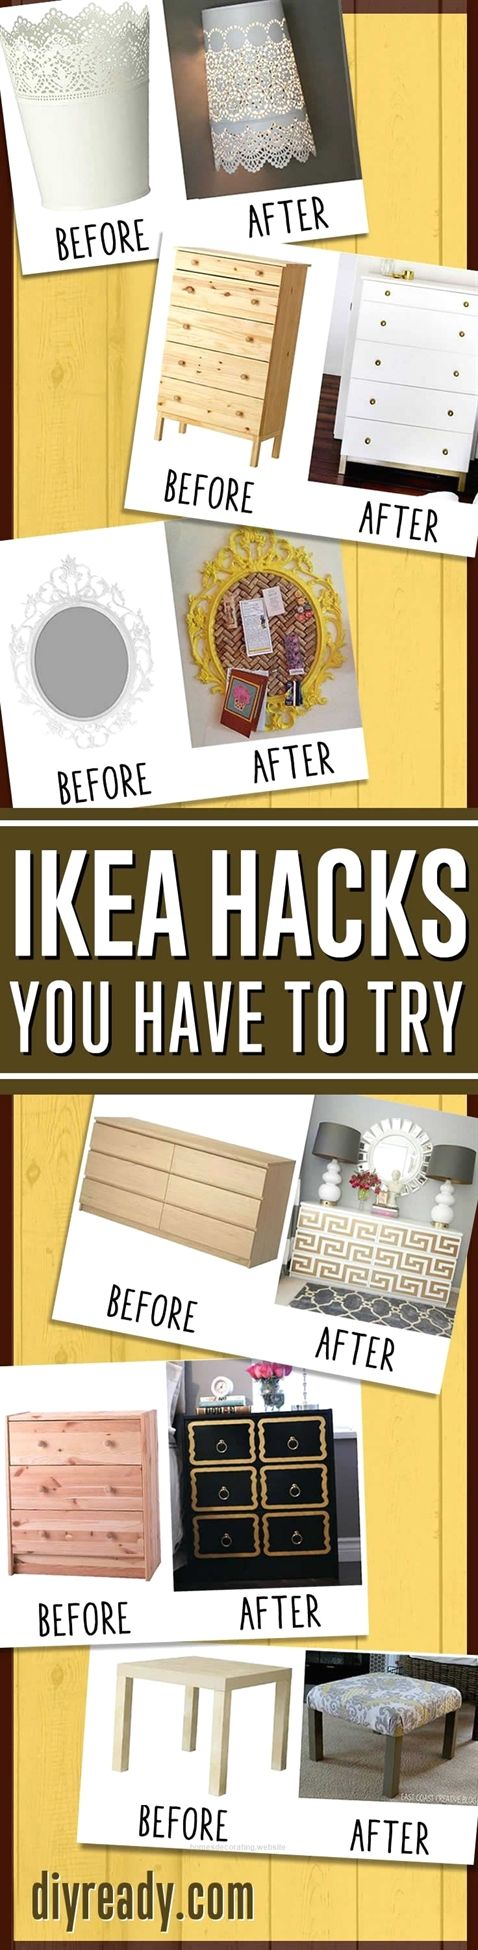 best ikea images on pinterest home ideas ikea hacks and for